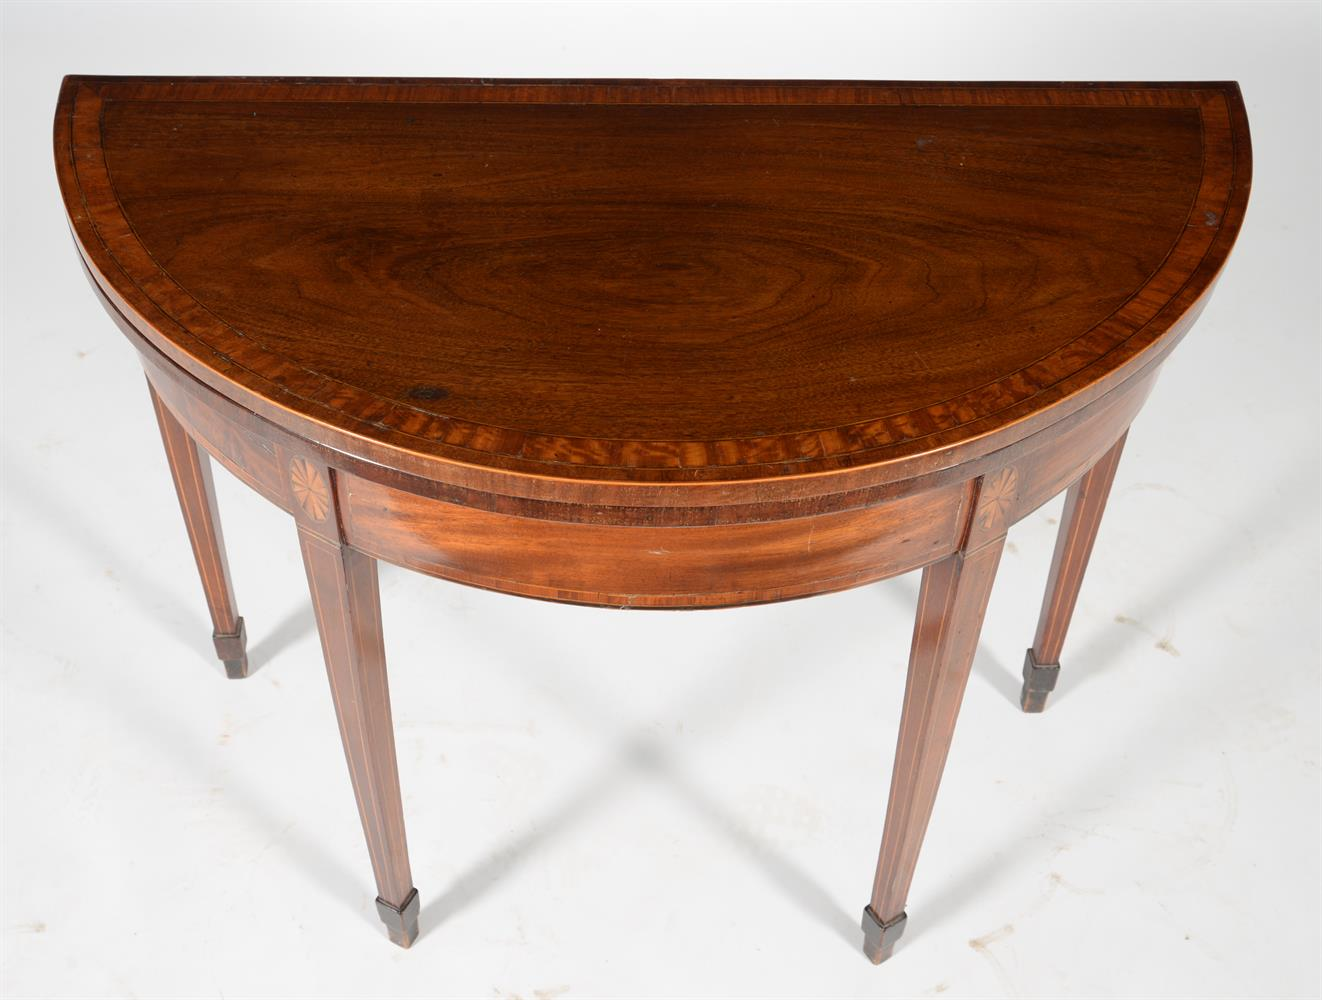 A George III mahogany and satinwood banded folding card table - Image 2 of 3